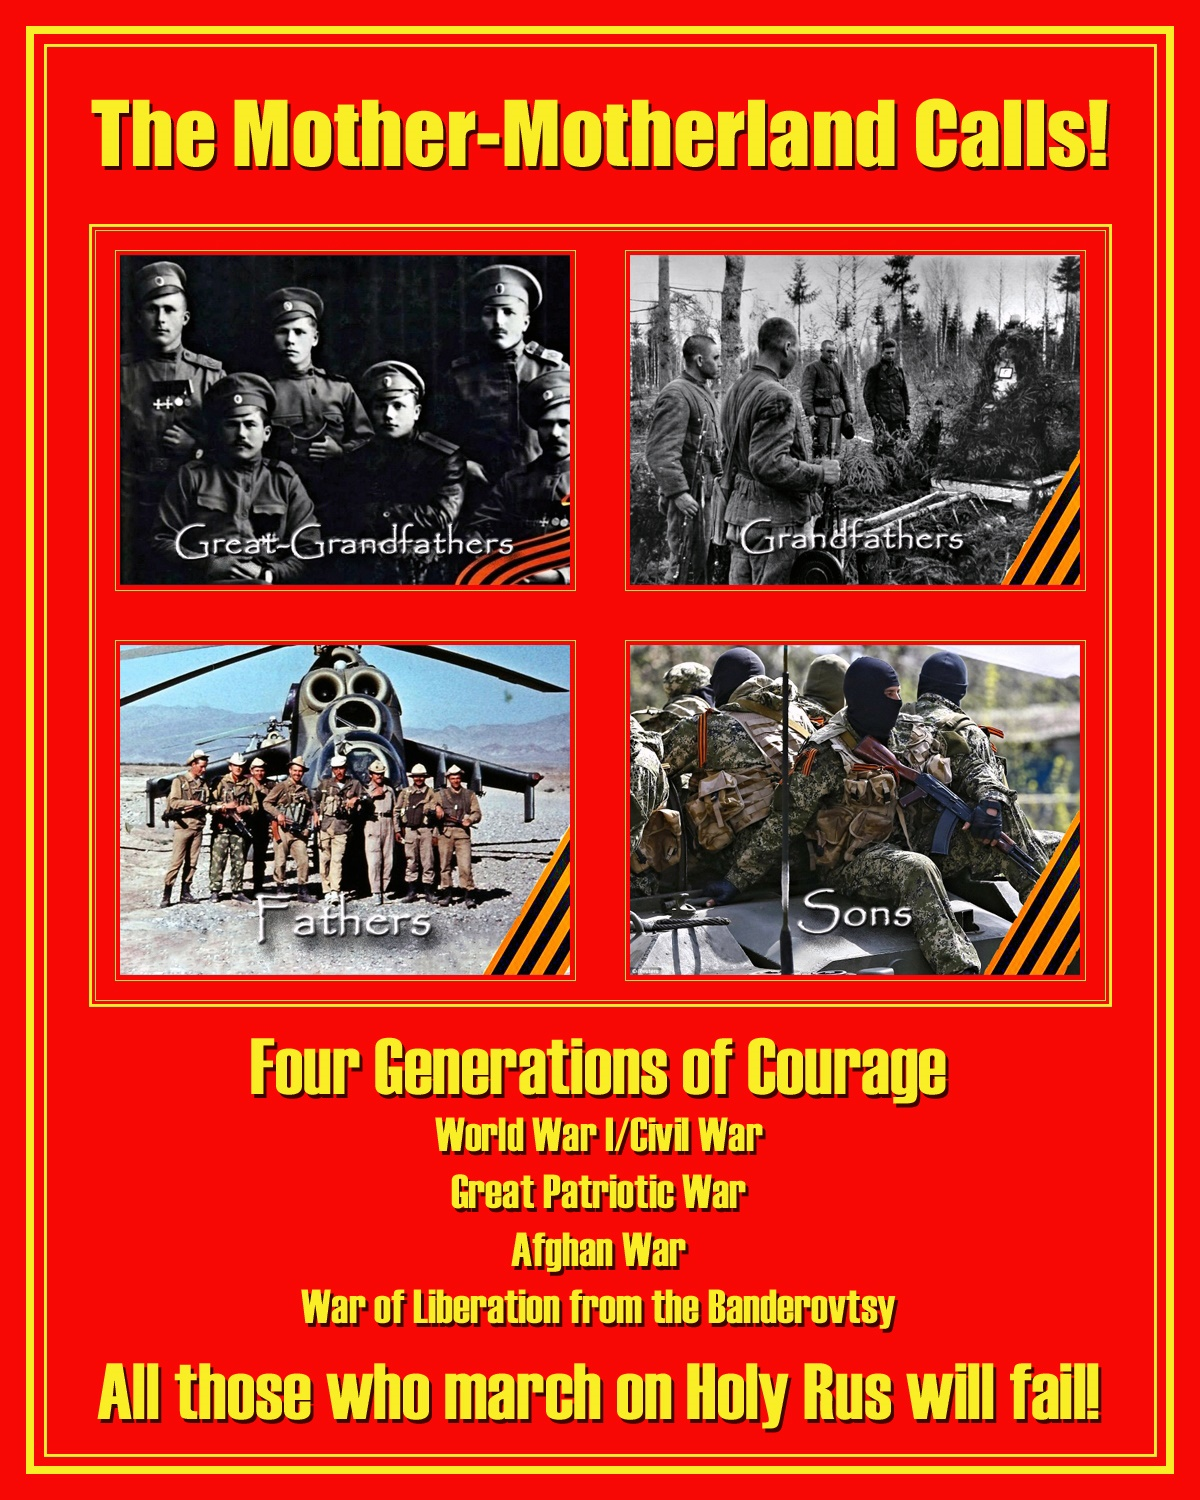 00 Four Generations of Courage. 11.10.14